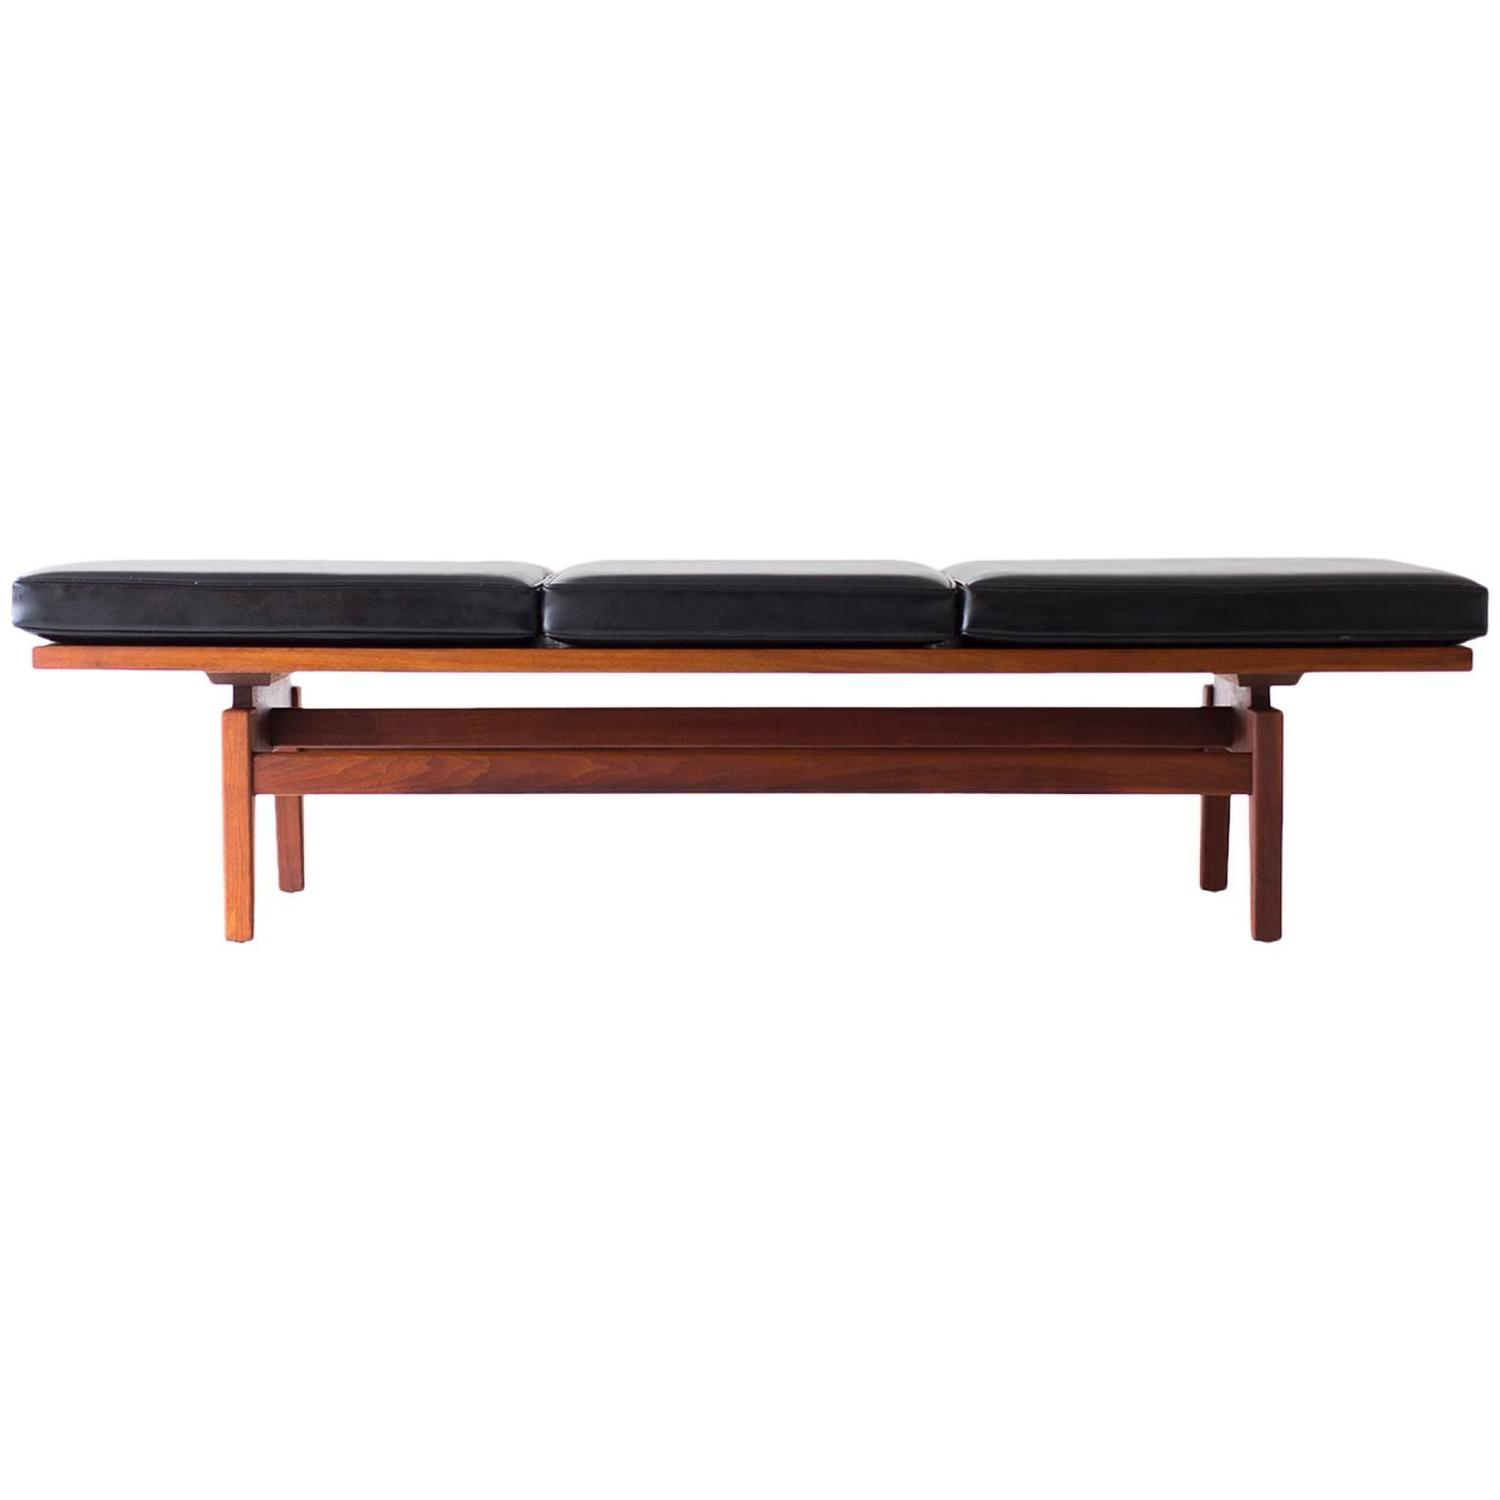 Jens Risom Coffee Table Or Bench For Sale At 1stdibs